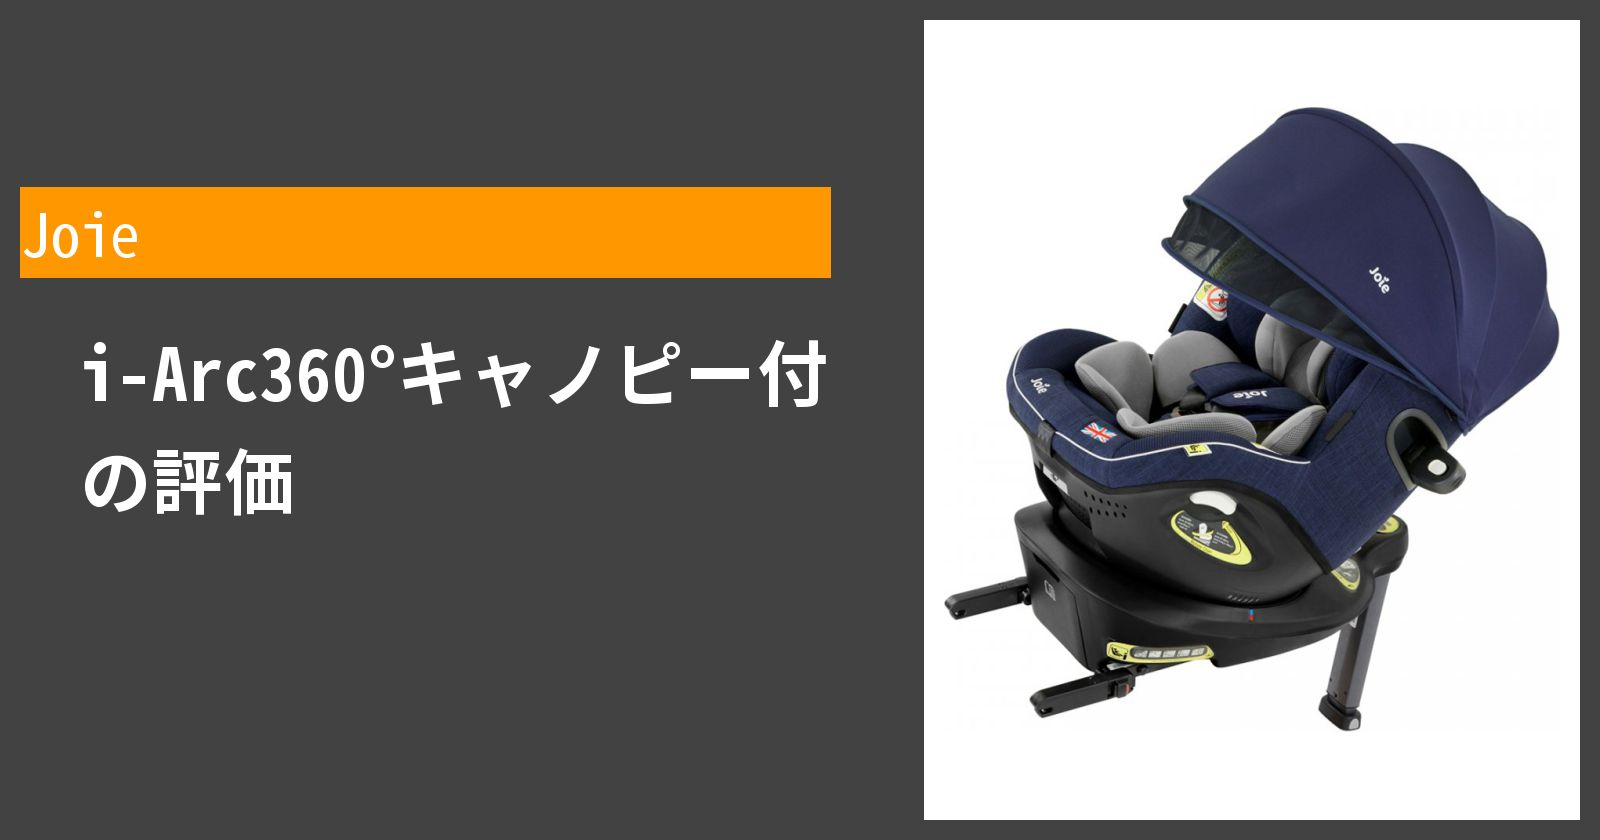 i-Arc360°キャノピー付を徹底評価